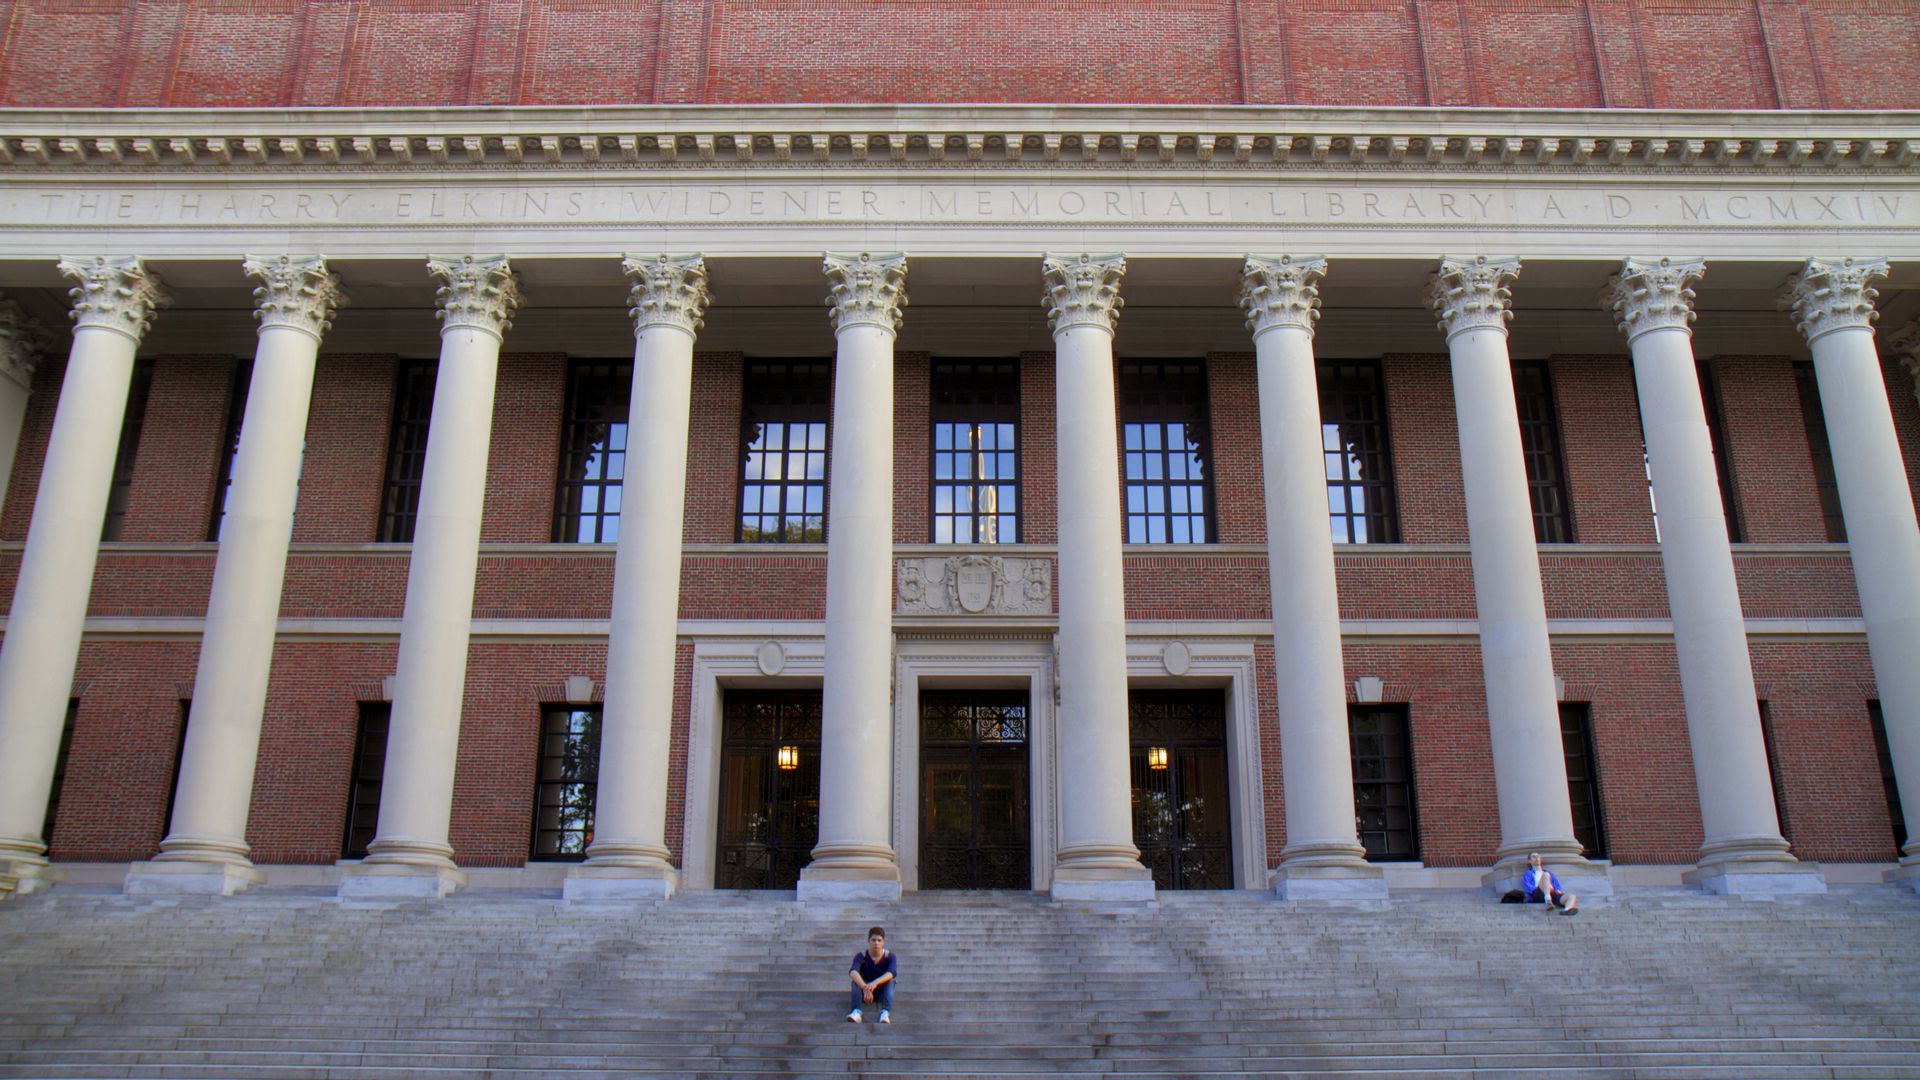 A student sits on concrete steps, wide shot